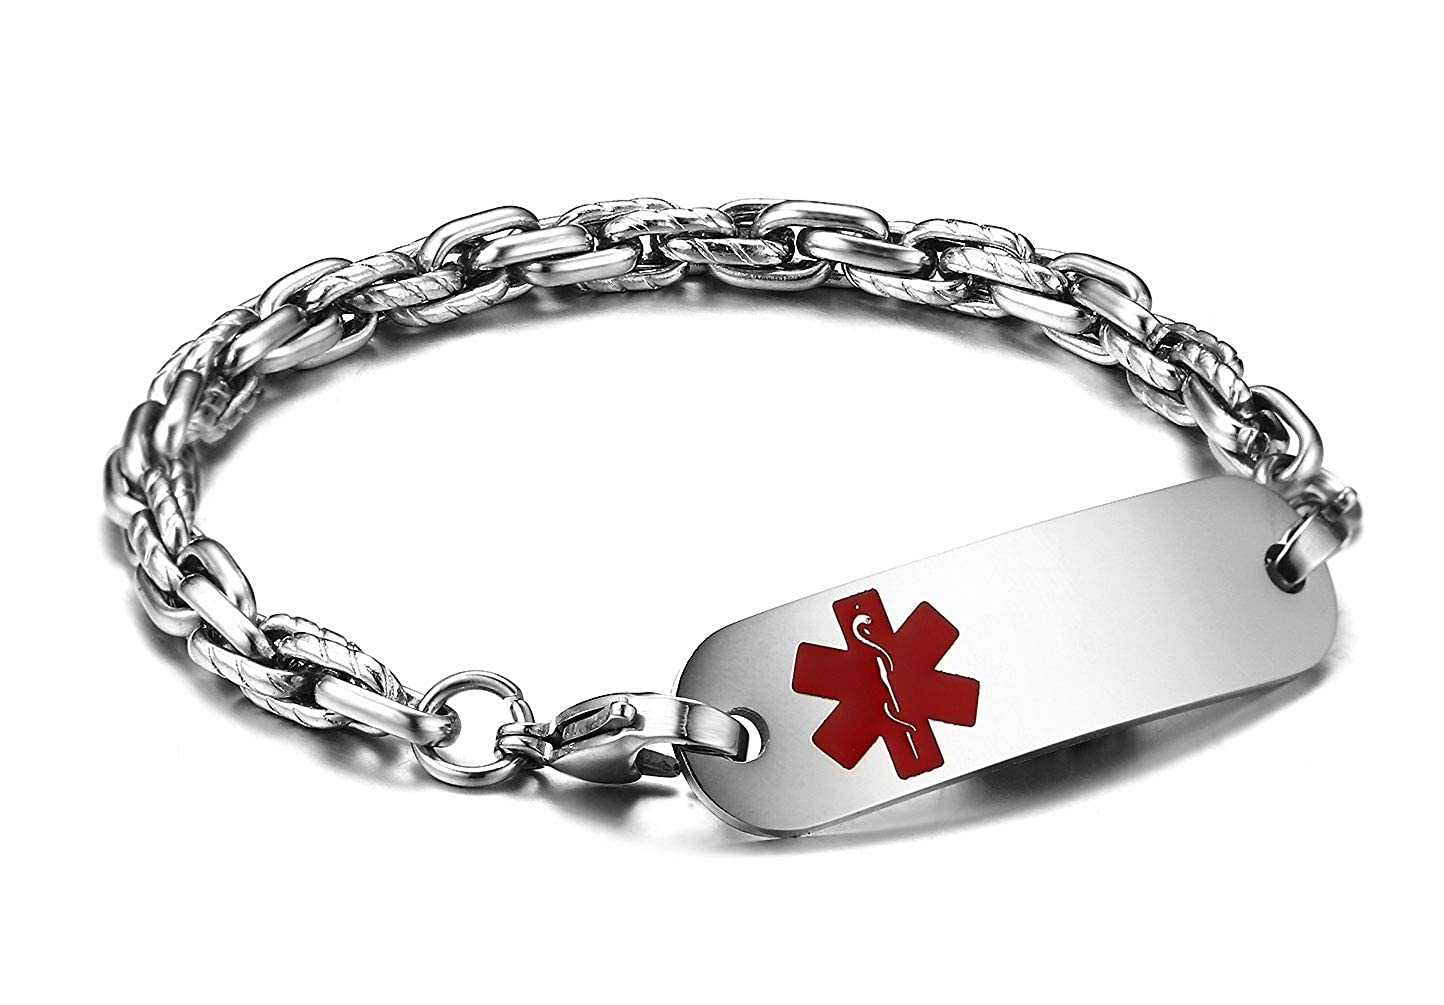 Silver JF.JEWELRY Stainless Steel Byzantine Link Medical Alert ID Bracelet for Women and Men Free Engraving